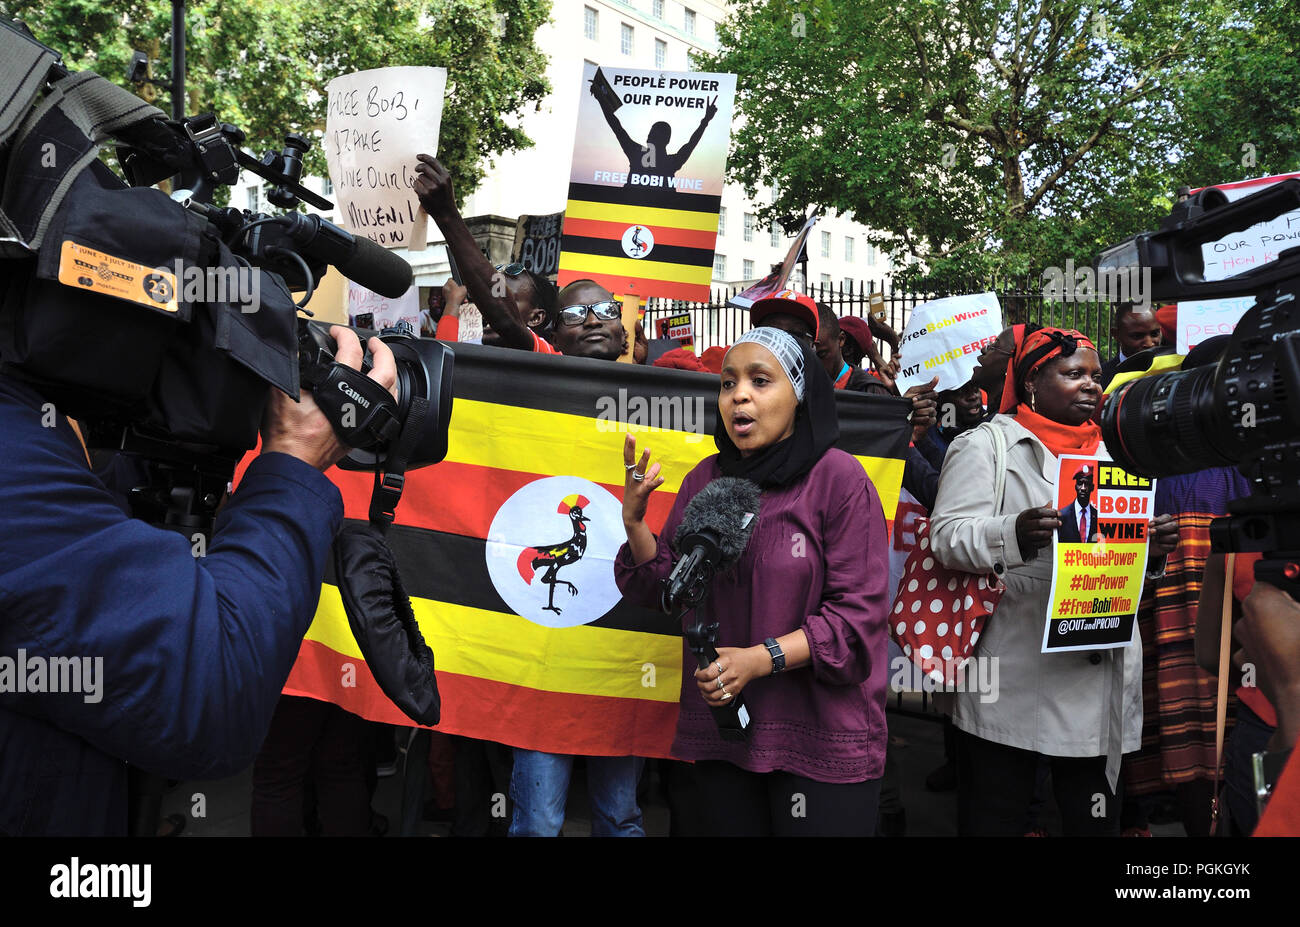 Zuhuru Yanus (BBC Presenter/Producer/Reporter, Swahili TV + World Service) presenting from a protest in Whitehall in support of Bobi Wine (Nigerian po - Stock Image